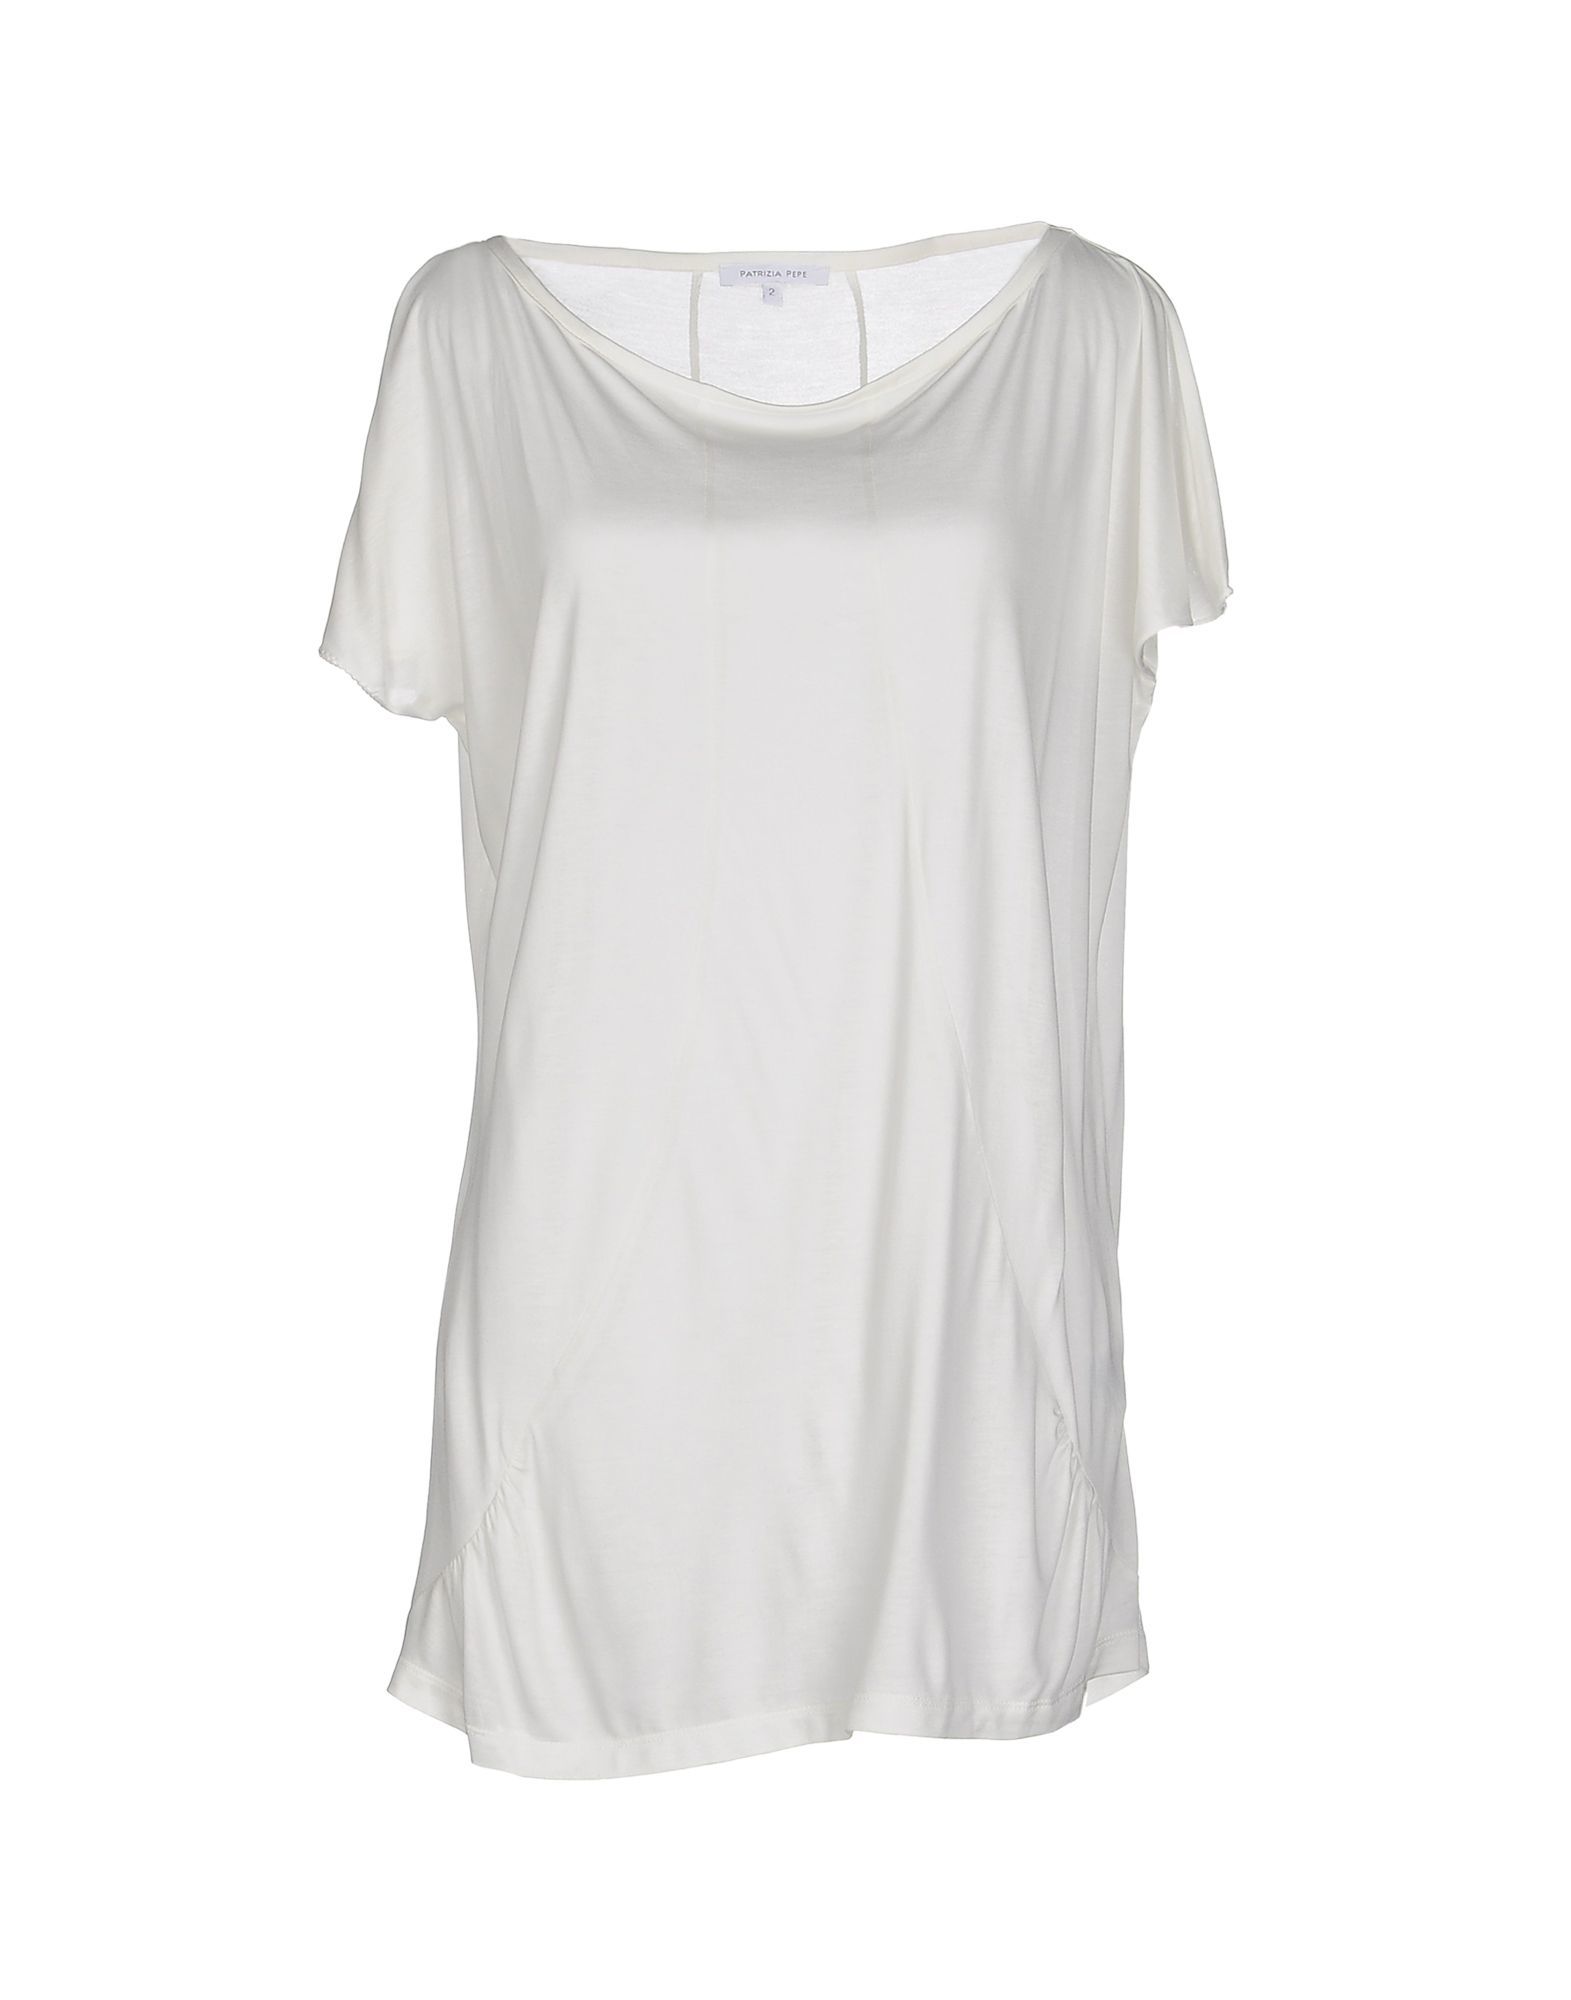 Patrizia pepe t shirt in white lyst for Thrilla in manila shirt under armour